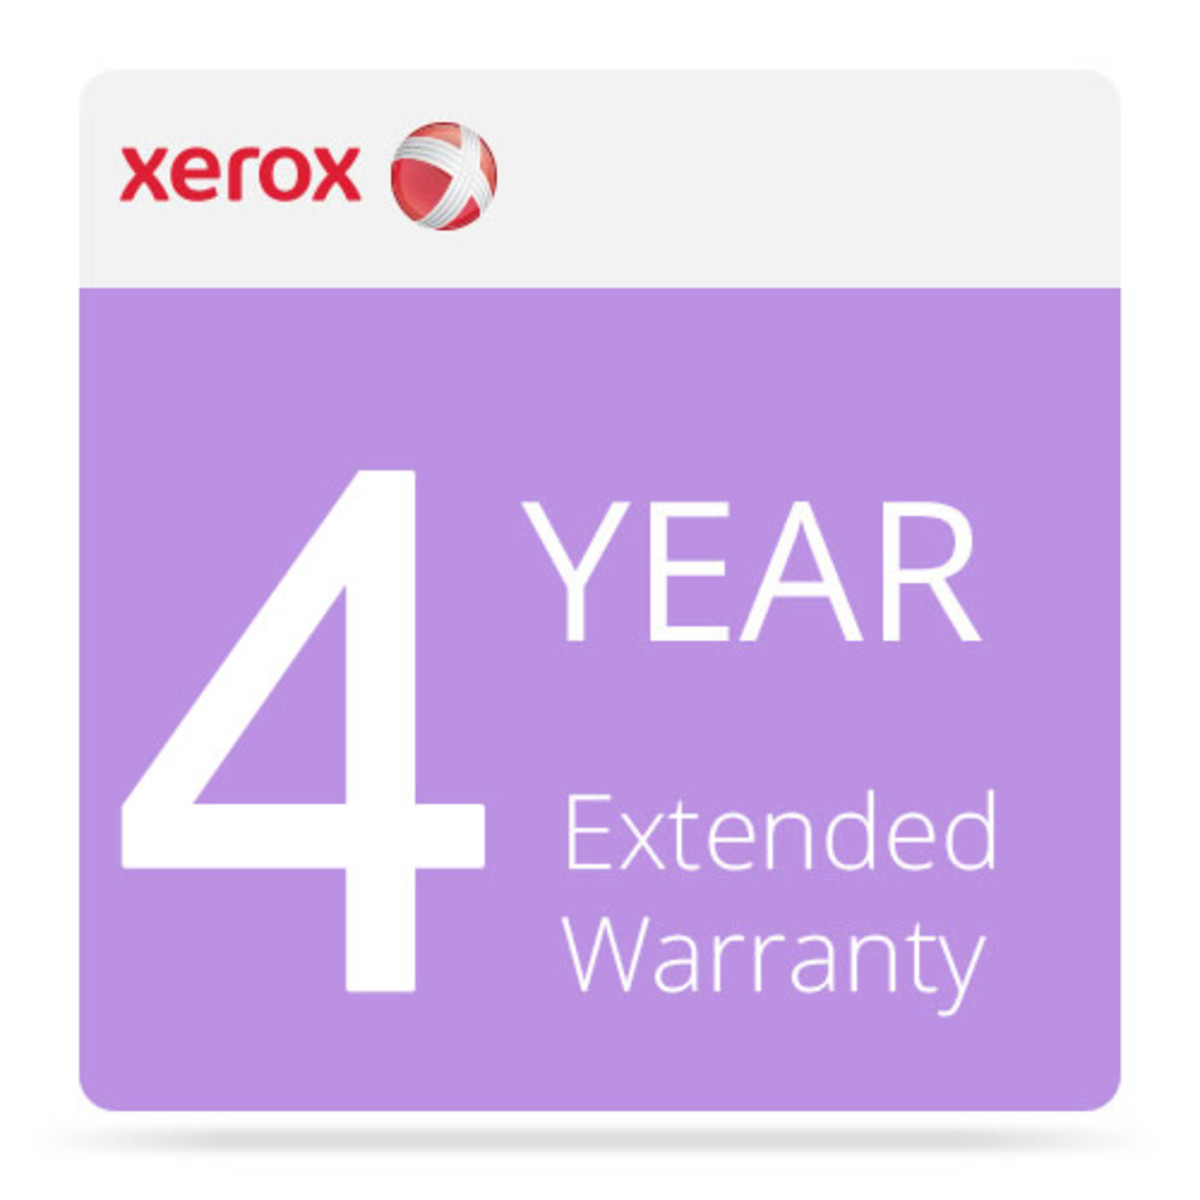 Xerox 4 Year Extended Warranty